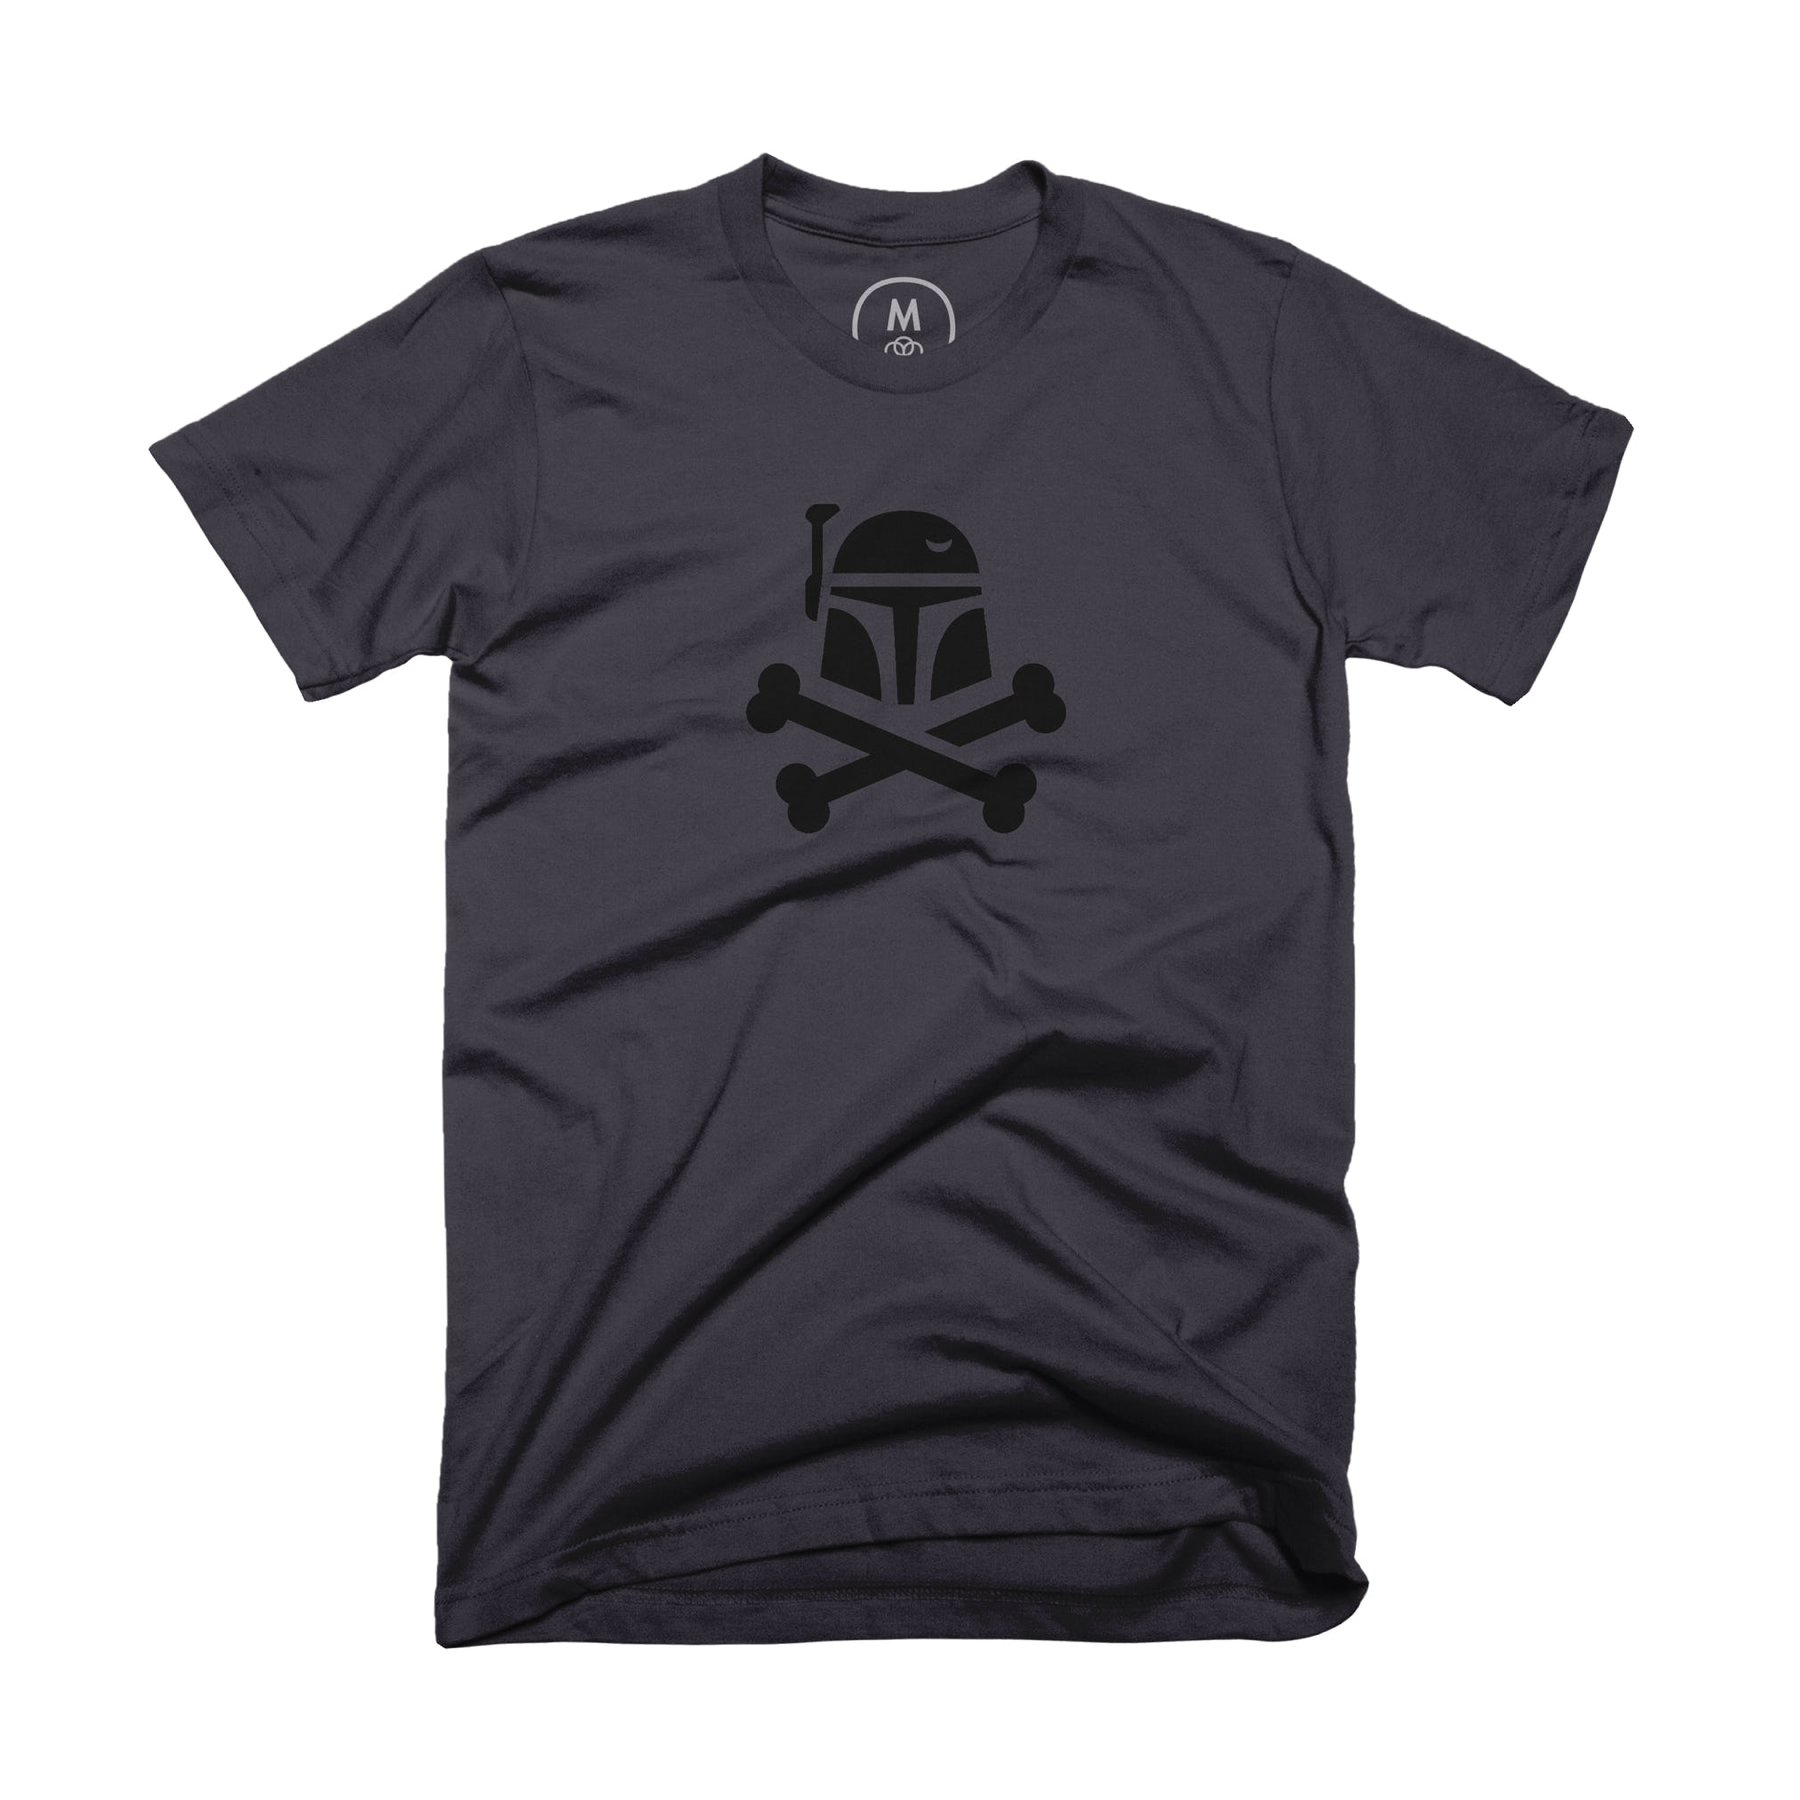 The Jolly Boba - Like Pirates and Star Wars bounty hunters? This is the shirt for you.$28